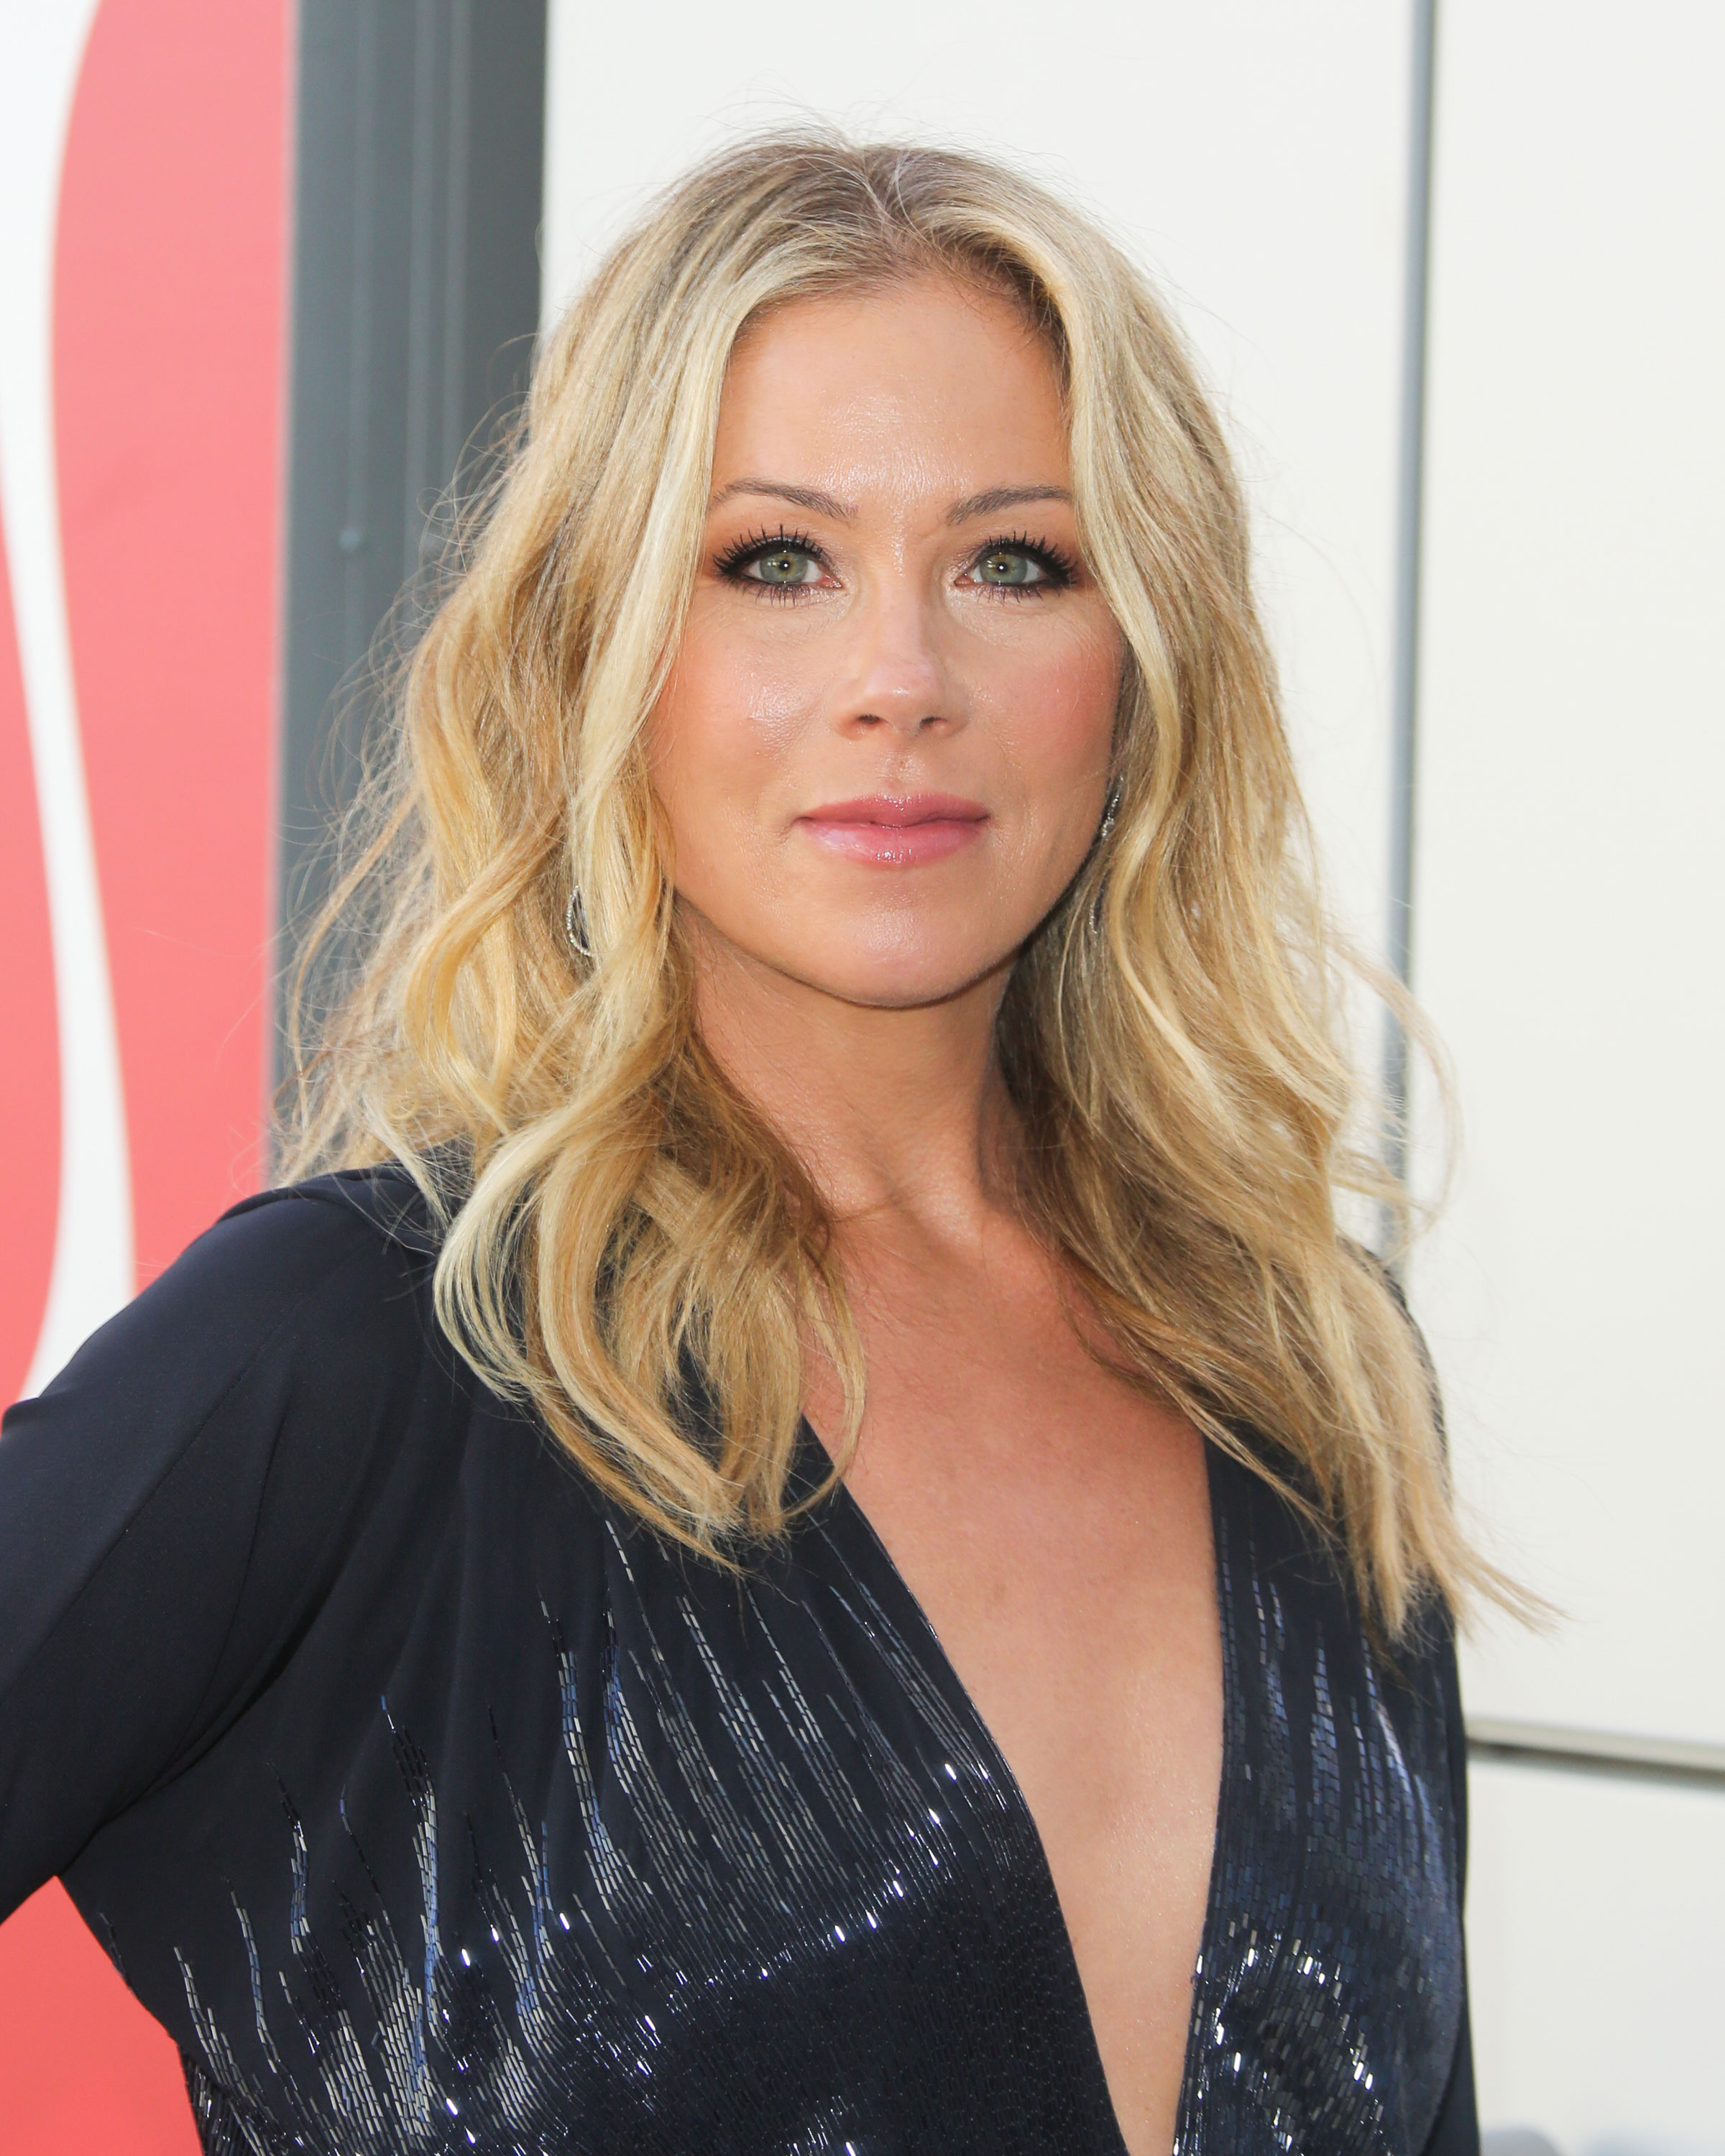 Cancer survivor Christina Applegate had ovaries, Fallopian tubes removed